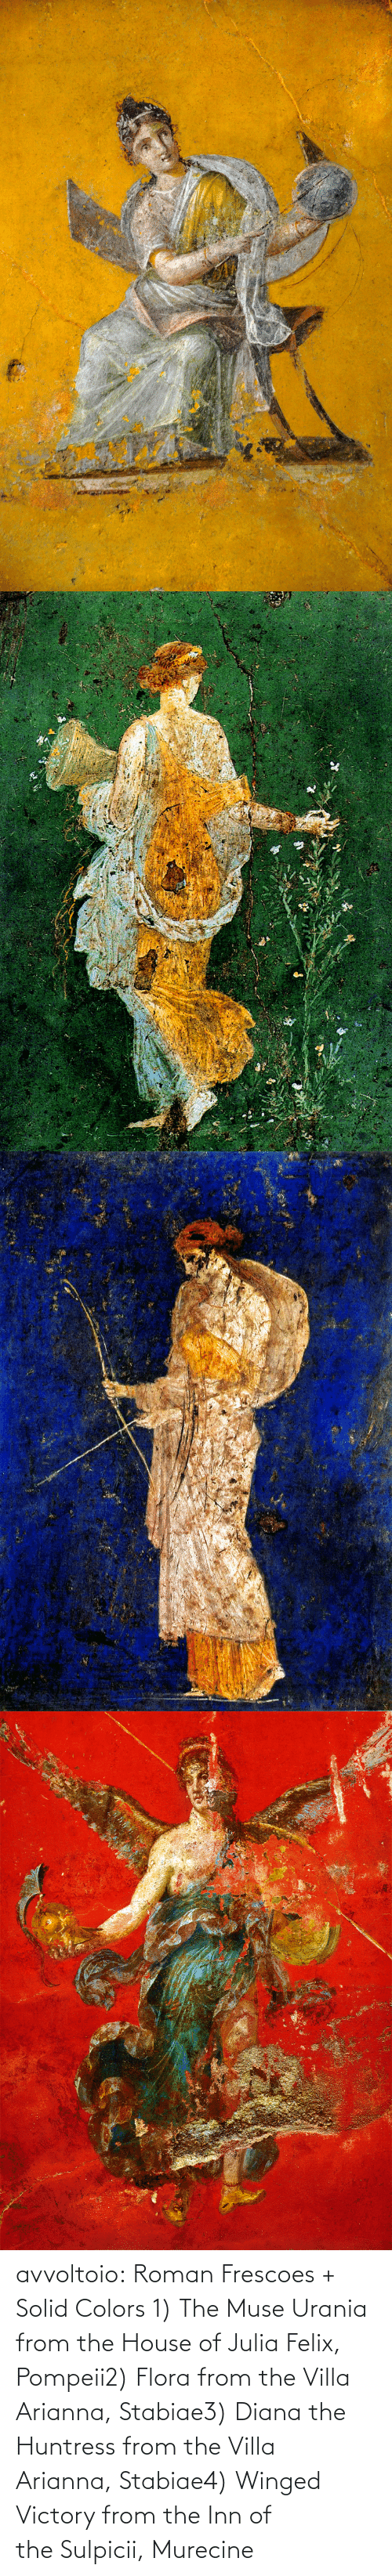 Roman: avvoltoio: Roman Frescoes + Solid Colors 1) The Muse Urania from the House of Julia Felix, Pompeii2) Flora from the Villa Arianna, Stabiae3) Diana the Huntress from the Villa Arianna, Stabiae4) Winged Victory from the Inn of the Sulpicii, Murecine